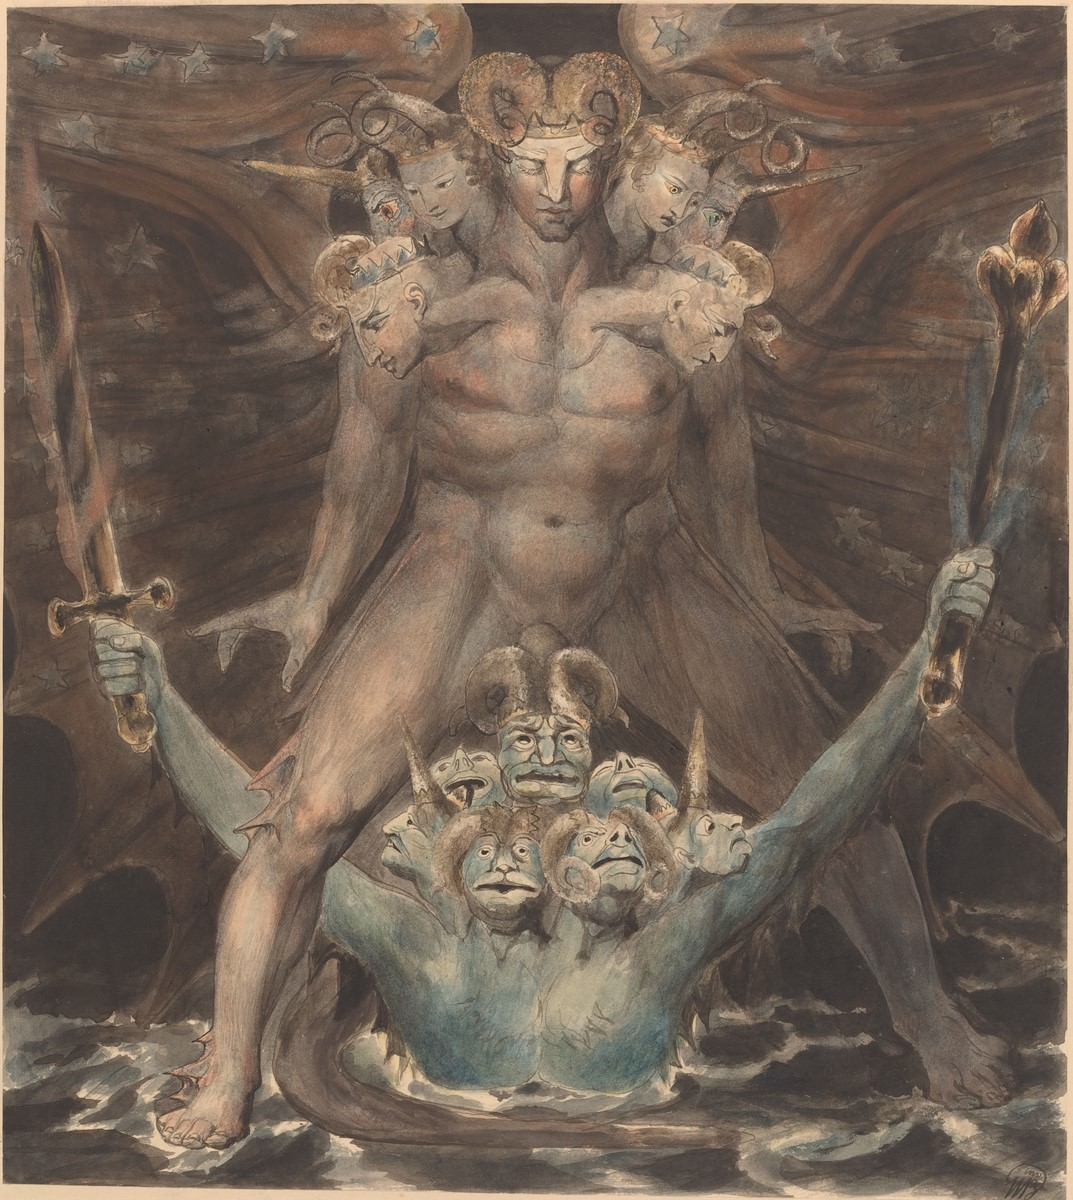 El gran dragón rojo y la bestia del mar, 1805. William Blake. National Gallery of Art, Washington. colección Rosenwald.